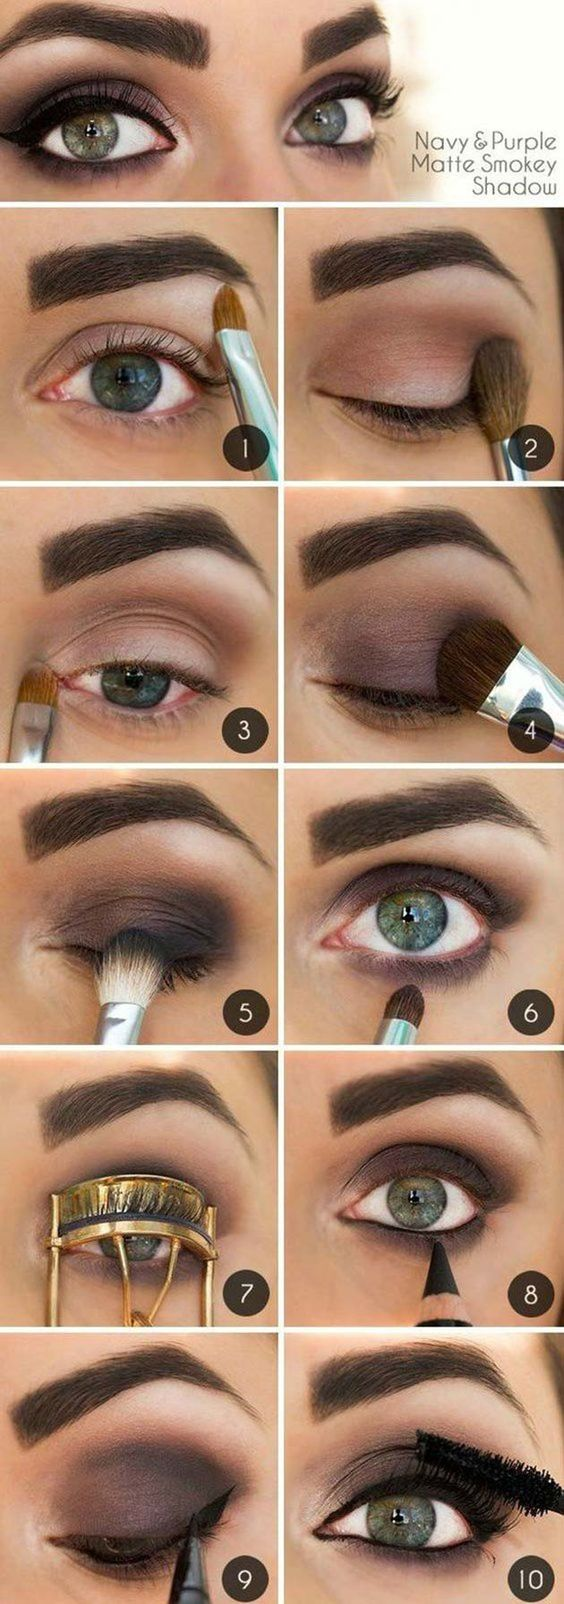 10 step by step makeup tutorials for green eyes her style code how to do a smokey eye for green eyes step by step baditri Gallery